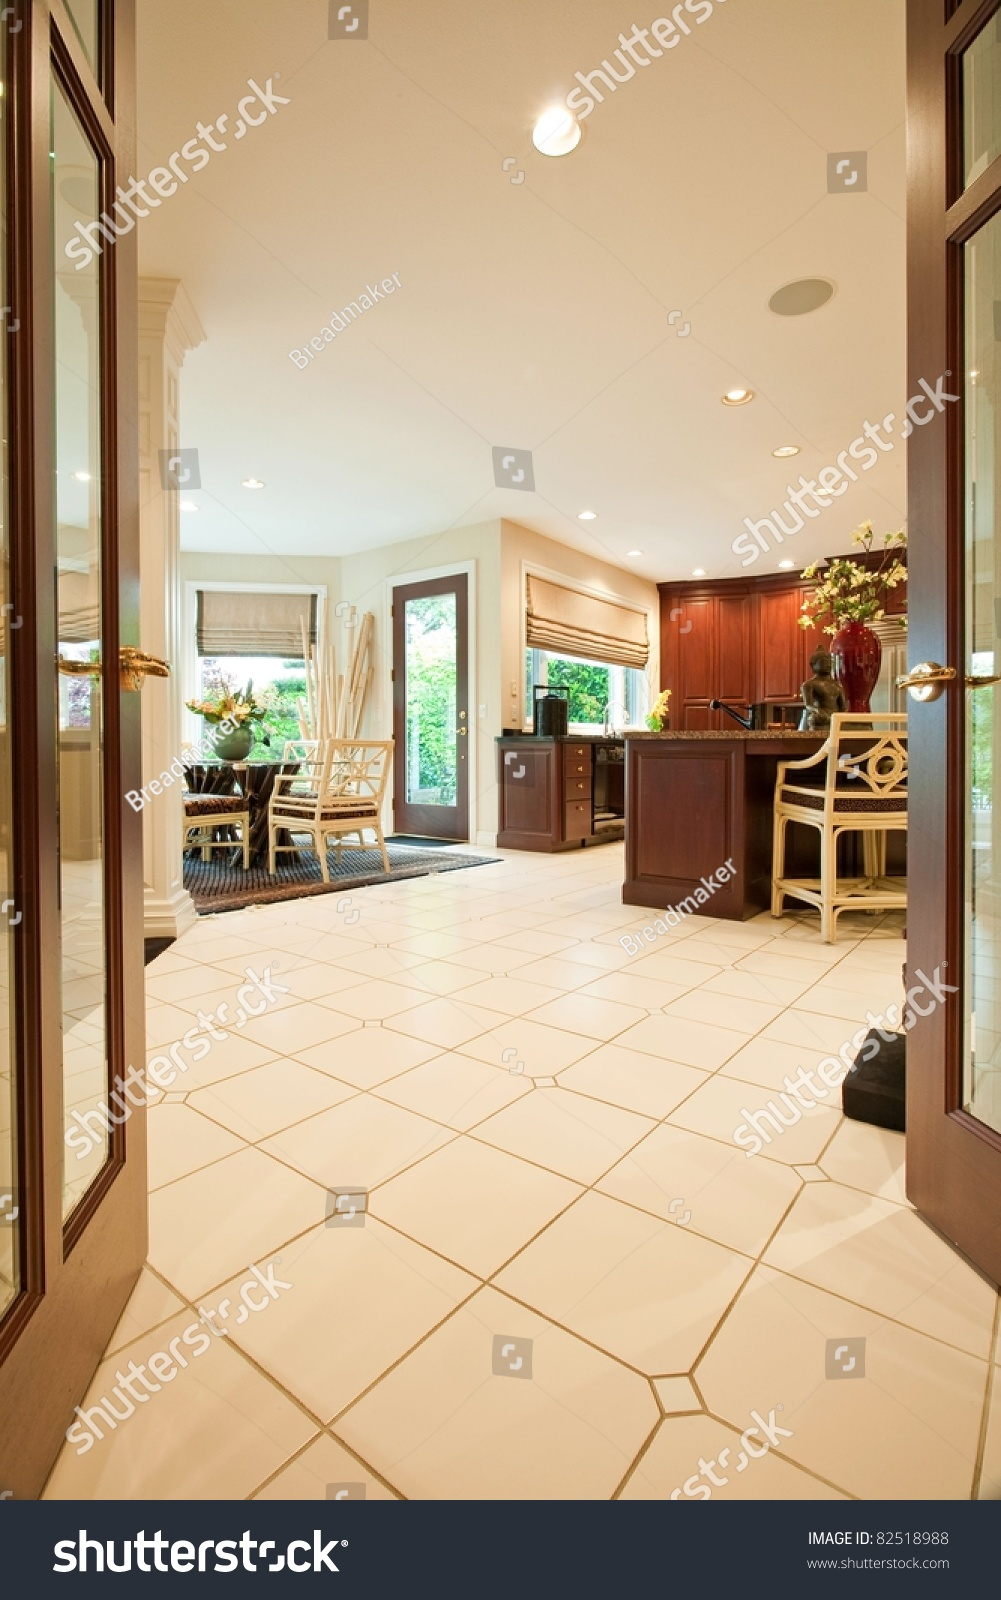 Foyer Luxury Kitchen : Beautiful kitchen interior entryway in luxury home stock